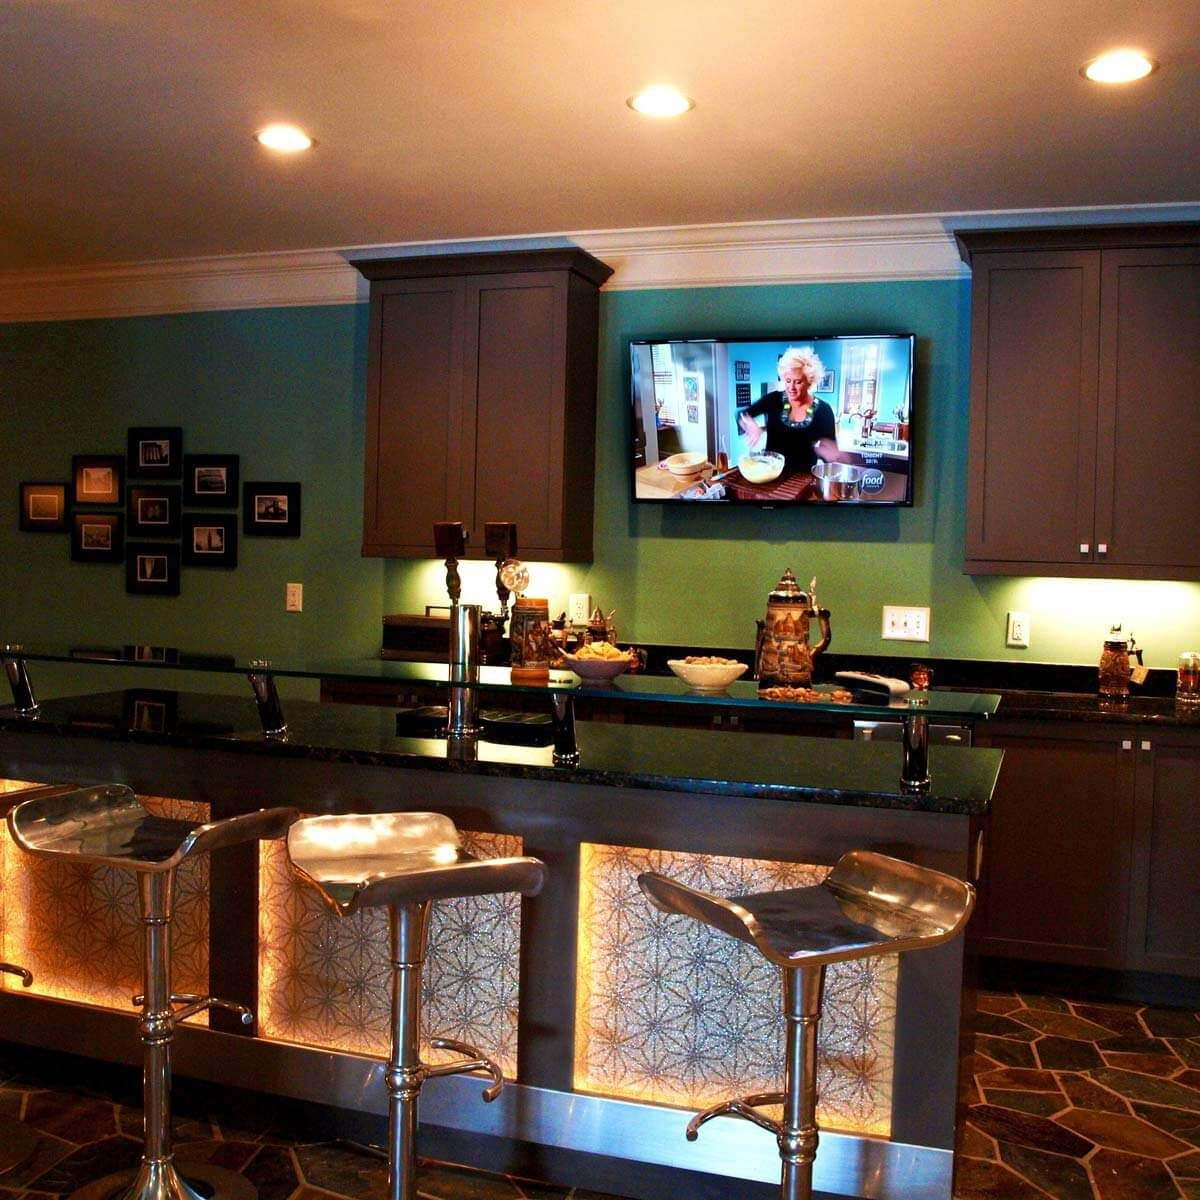 Luxury Man Cave Game Room Bar With Images: 15 Awesome Man Cave Spaces For Watching The Big Game